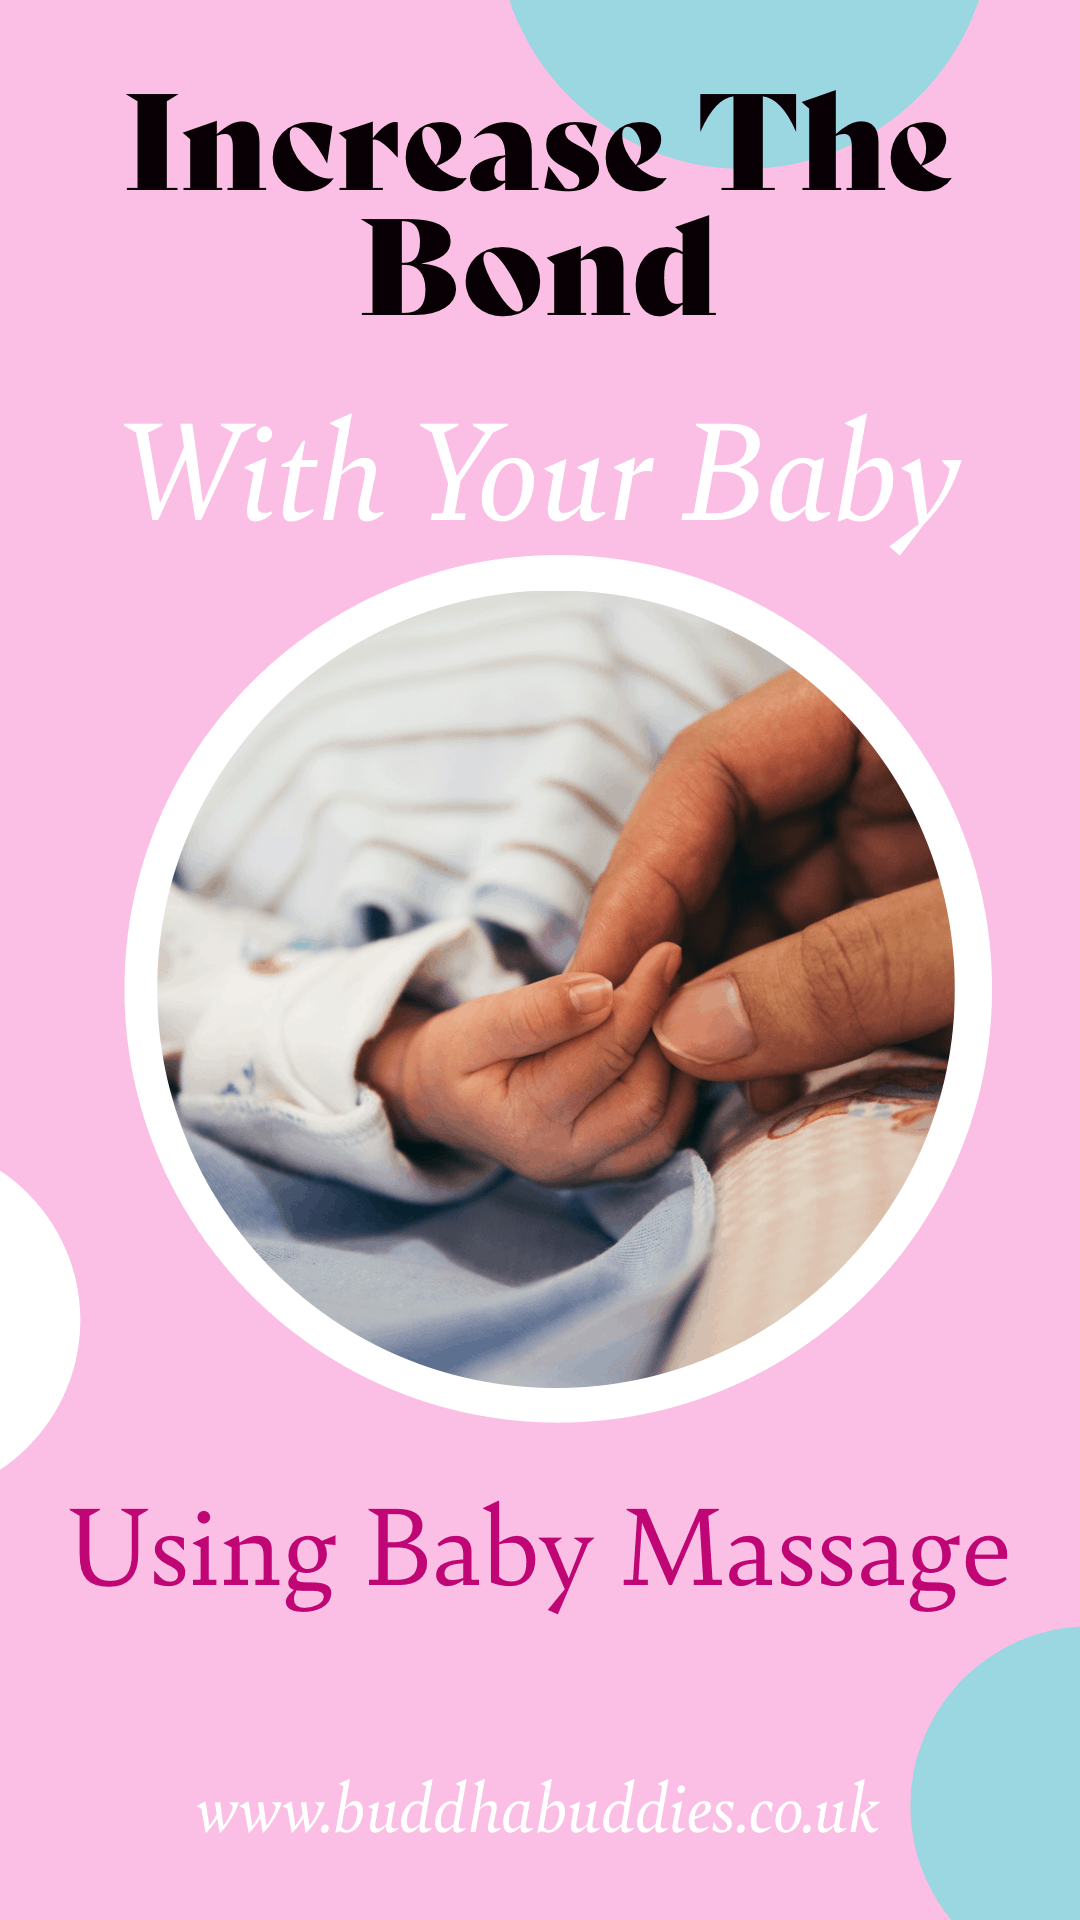 Bonding With Your Baby - A Guide for Parents